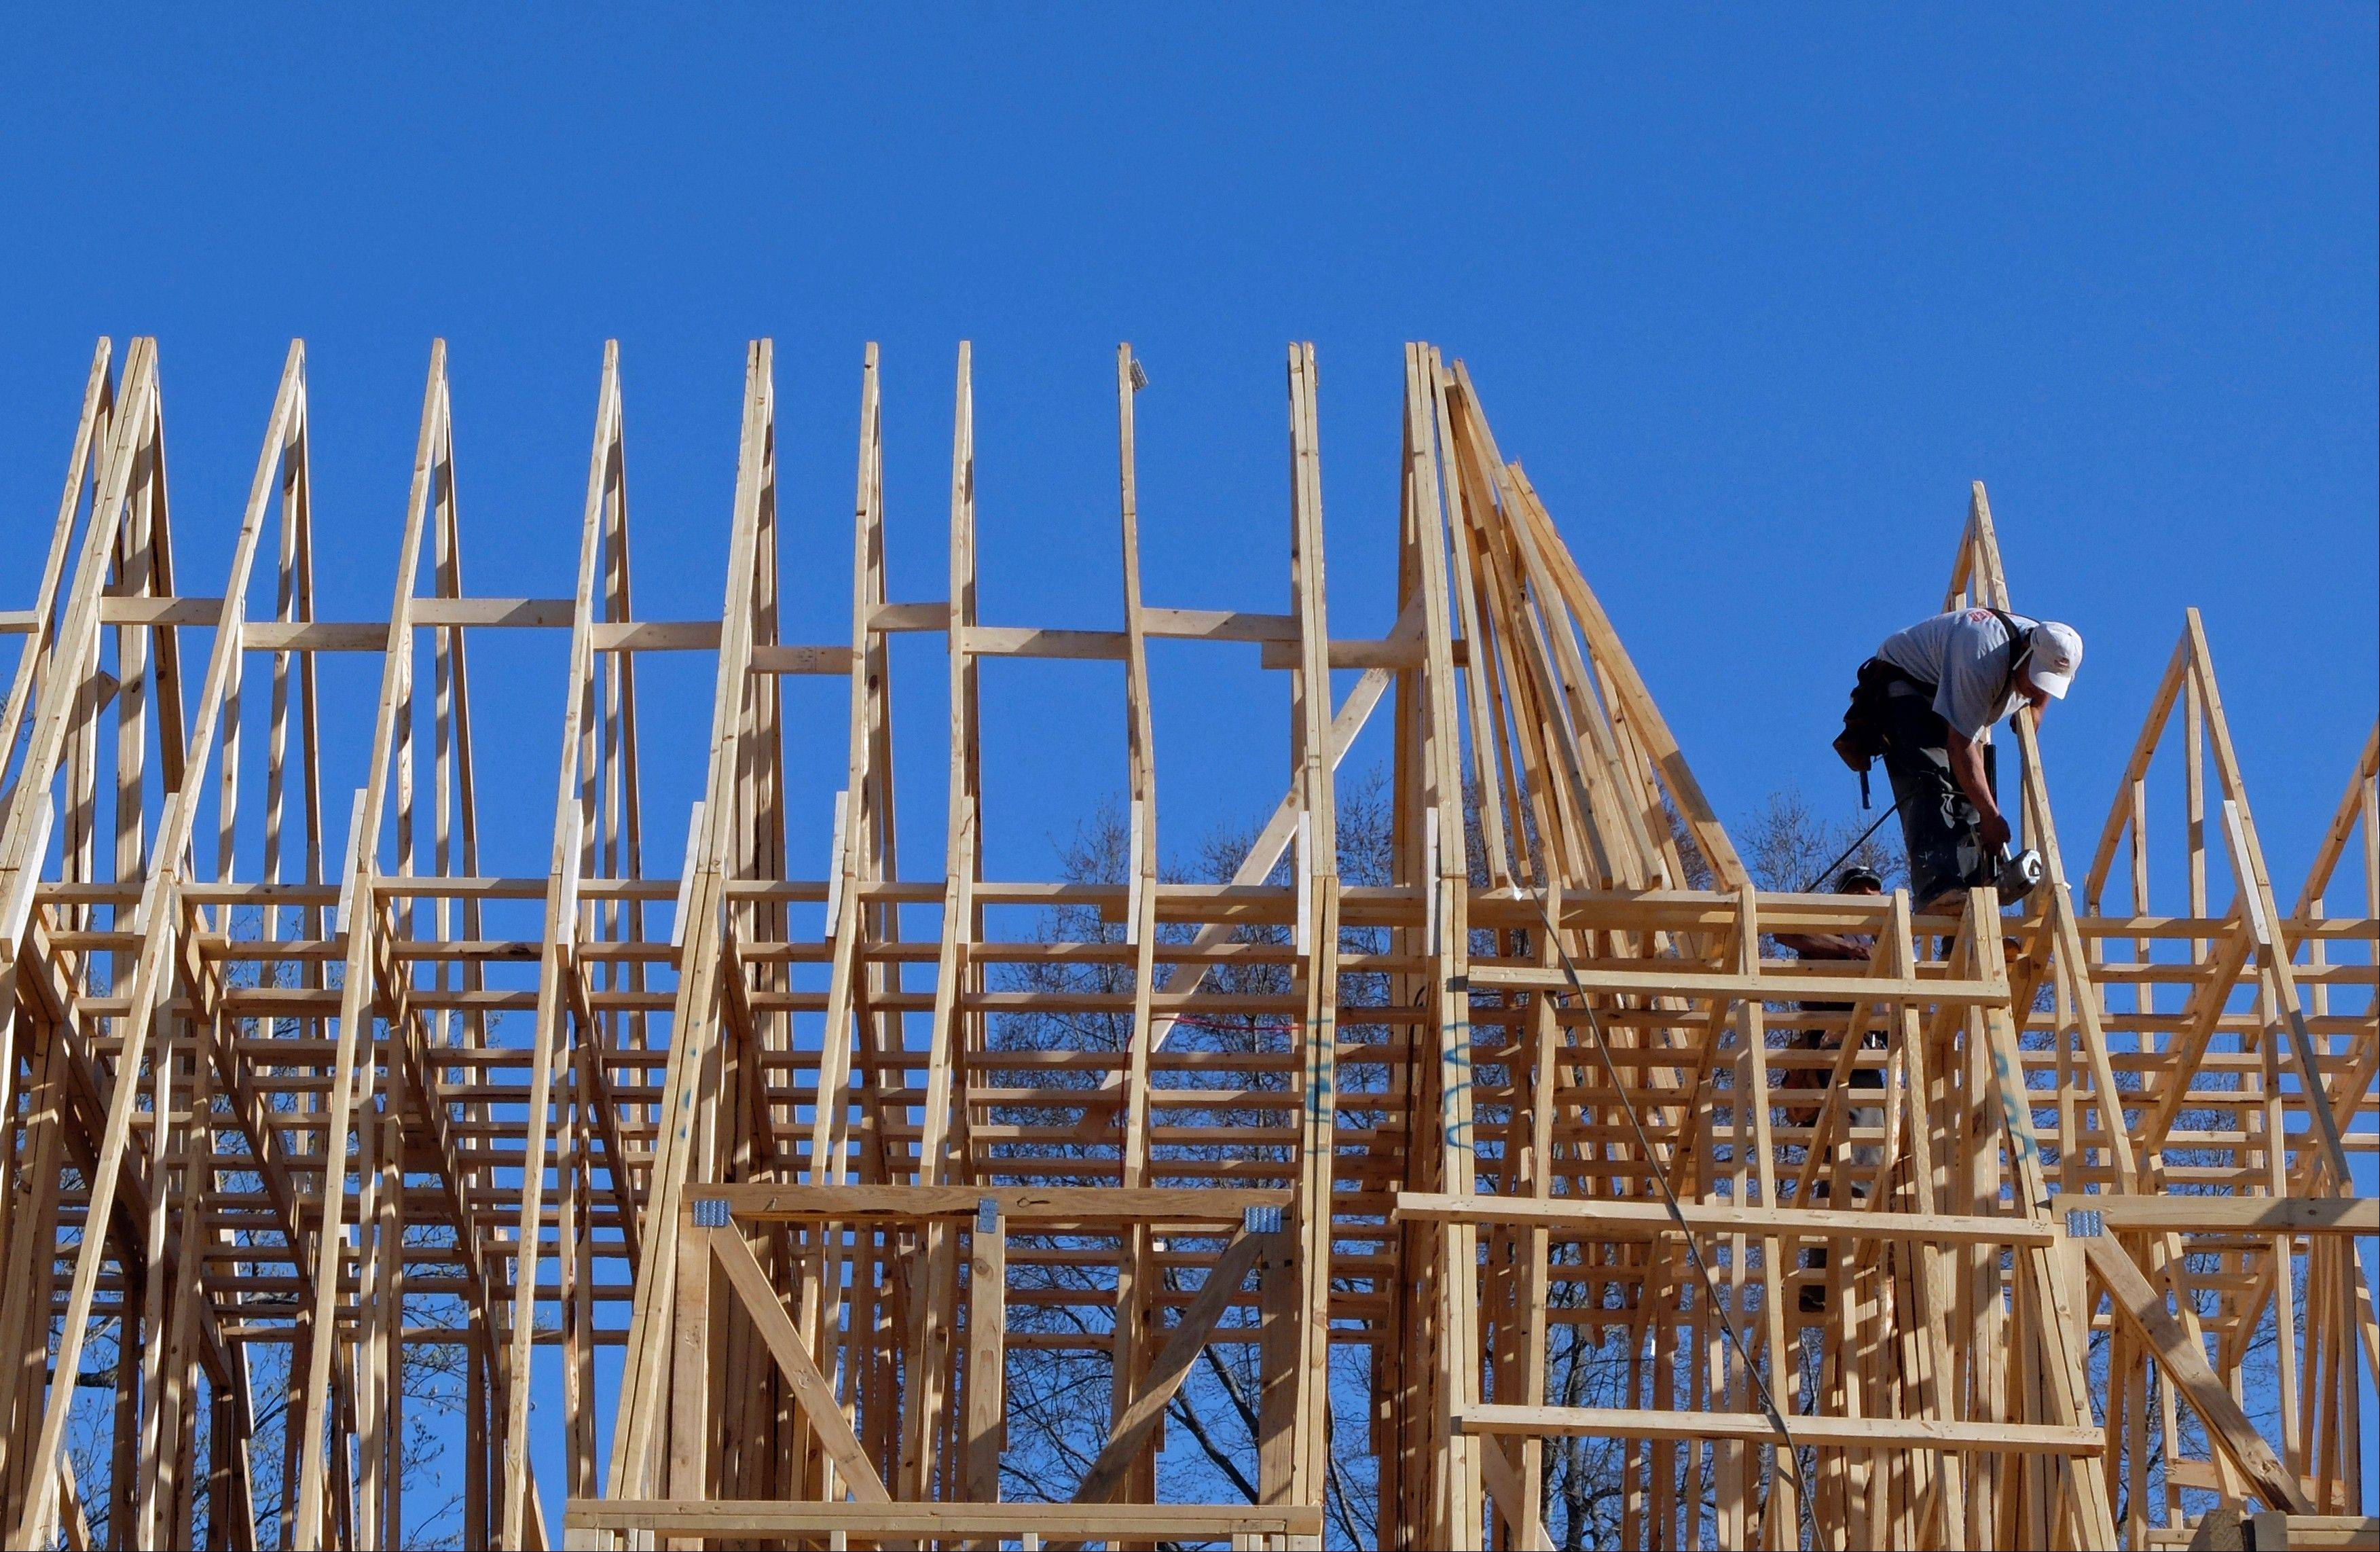 A worker helps frame a new home under construction in Matthews, N.C. U.S. homebuilders are concerned that limited land and rising costs for building materials and labor will slow sales in the short term.